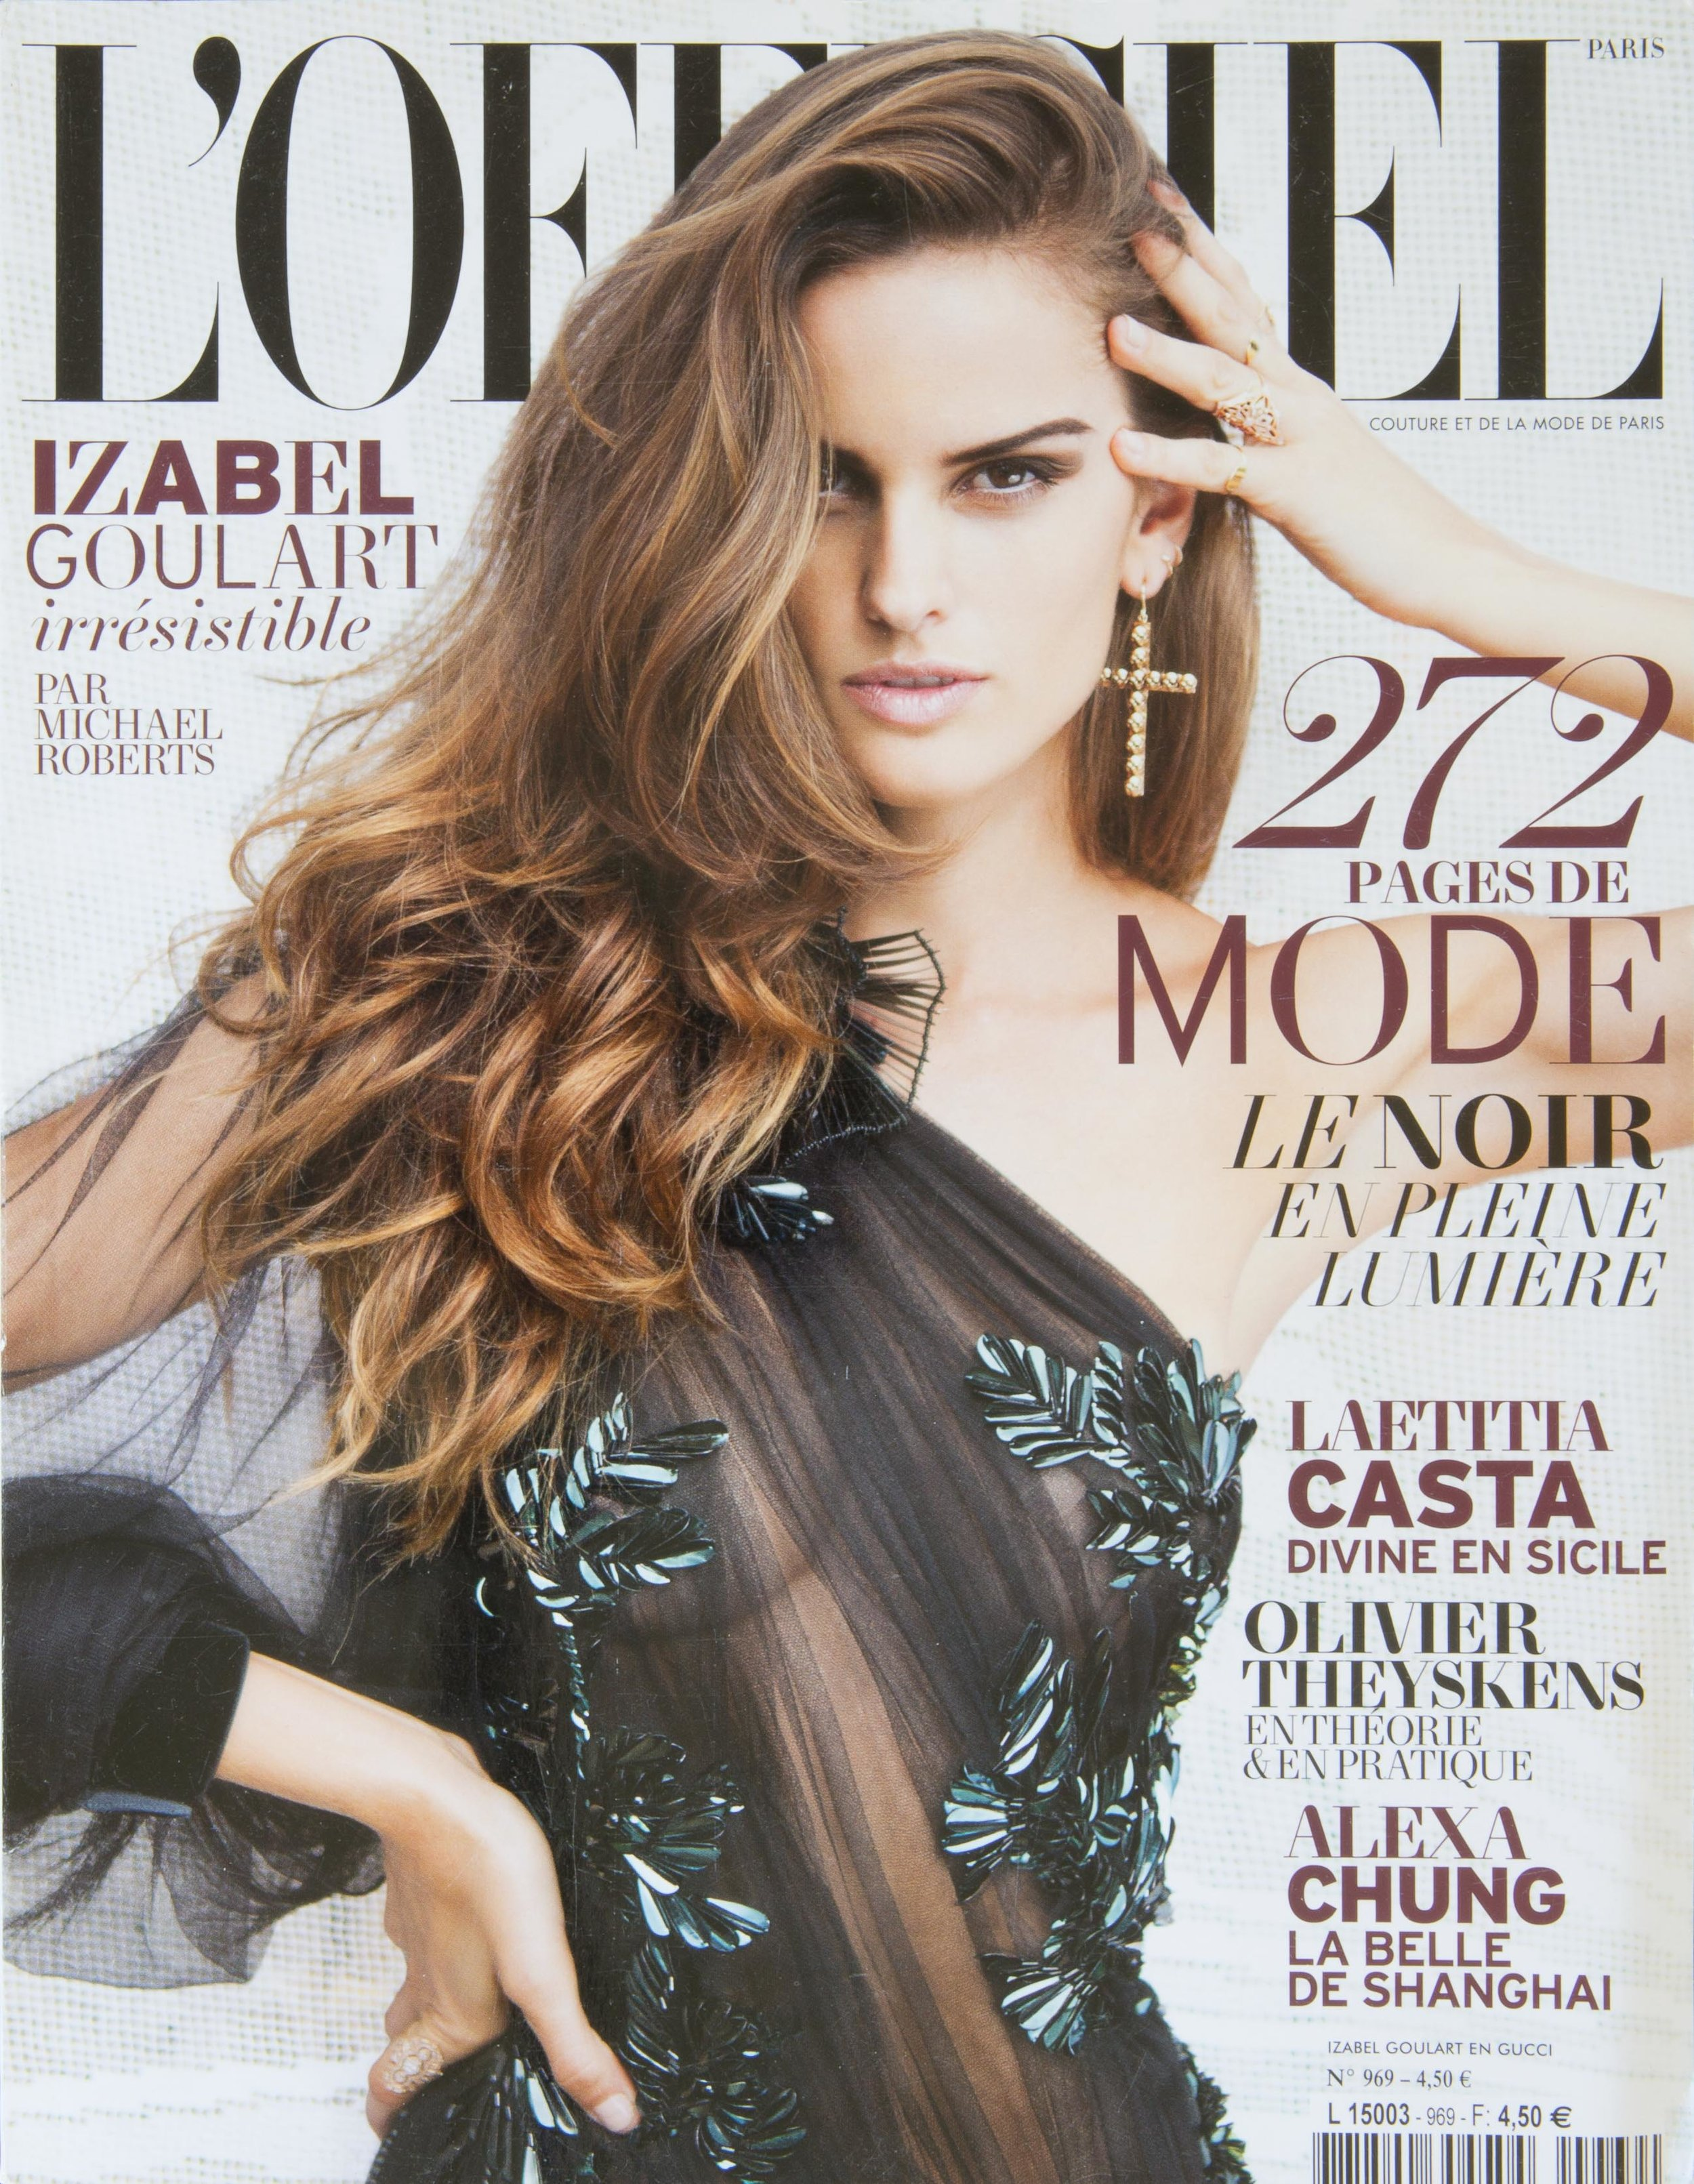 L'Officiel Magazine. Press. 2012.jpg